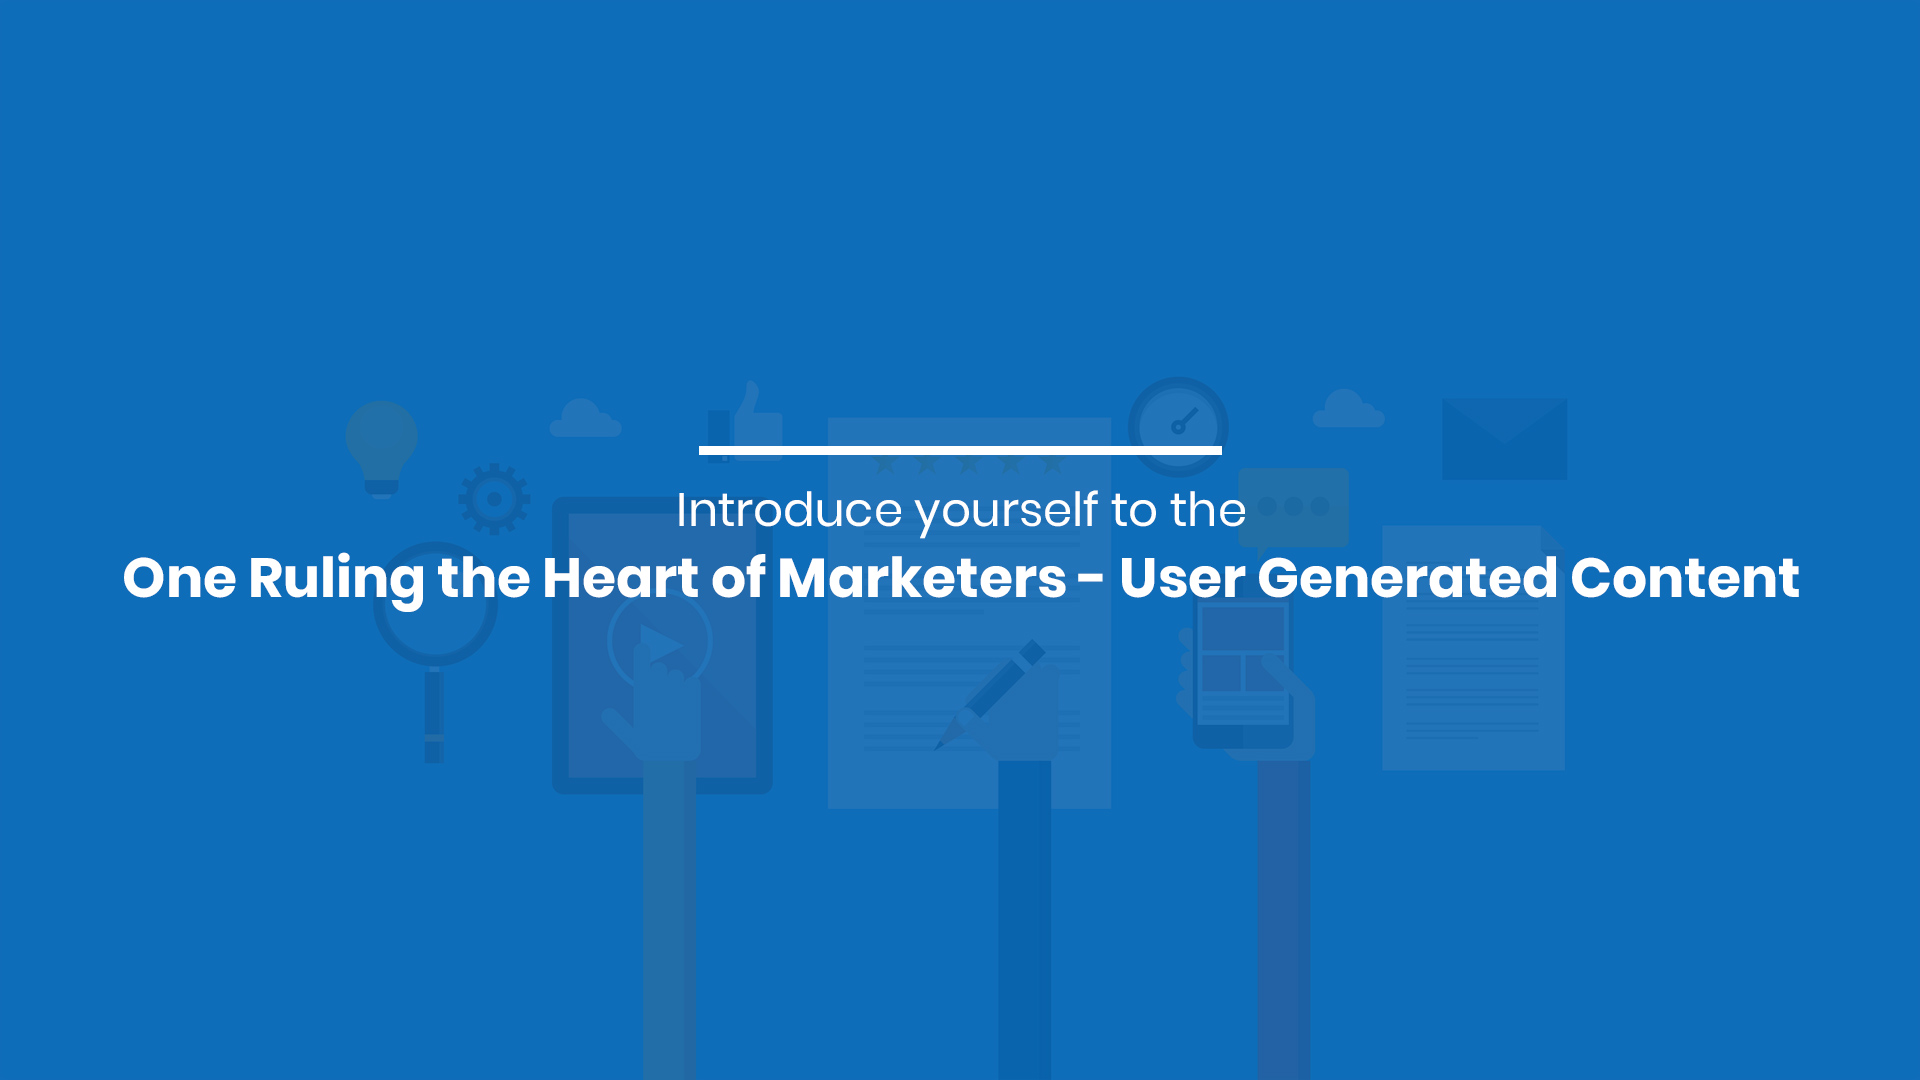 Introduce yourself to the One Ruling the Heart of Marketers - User Generated Content